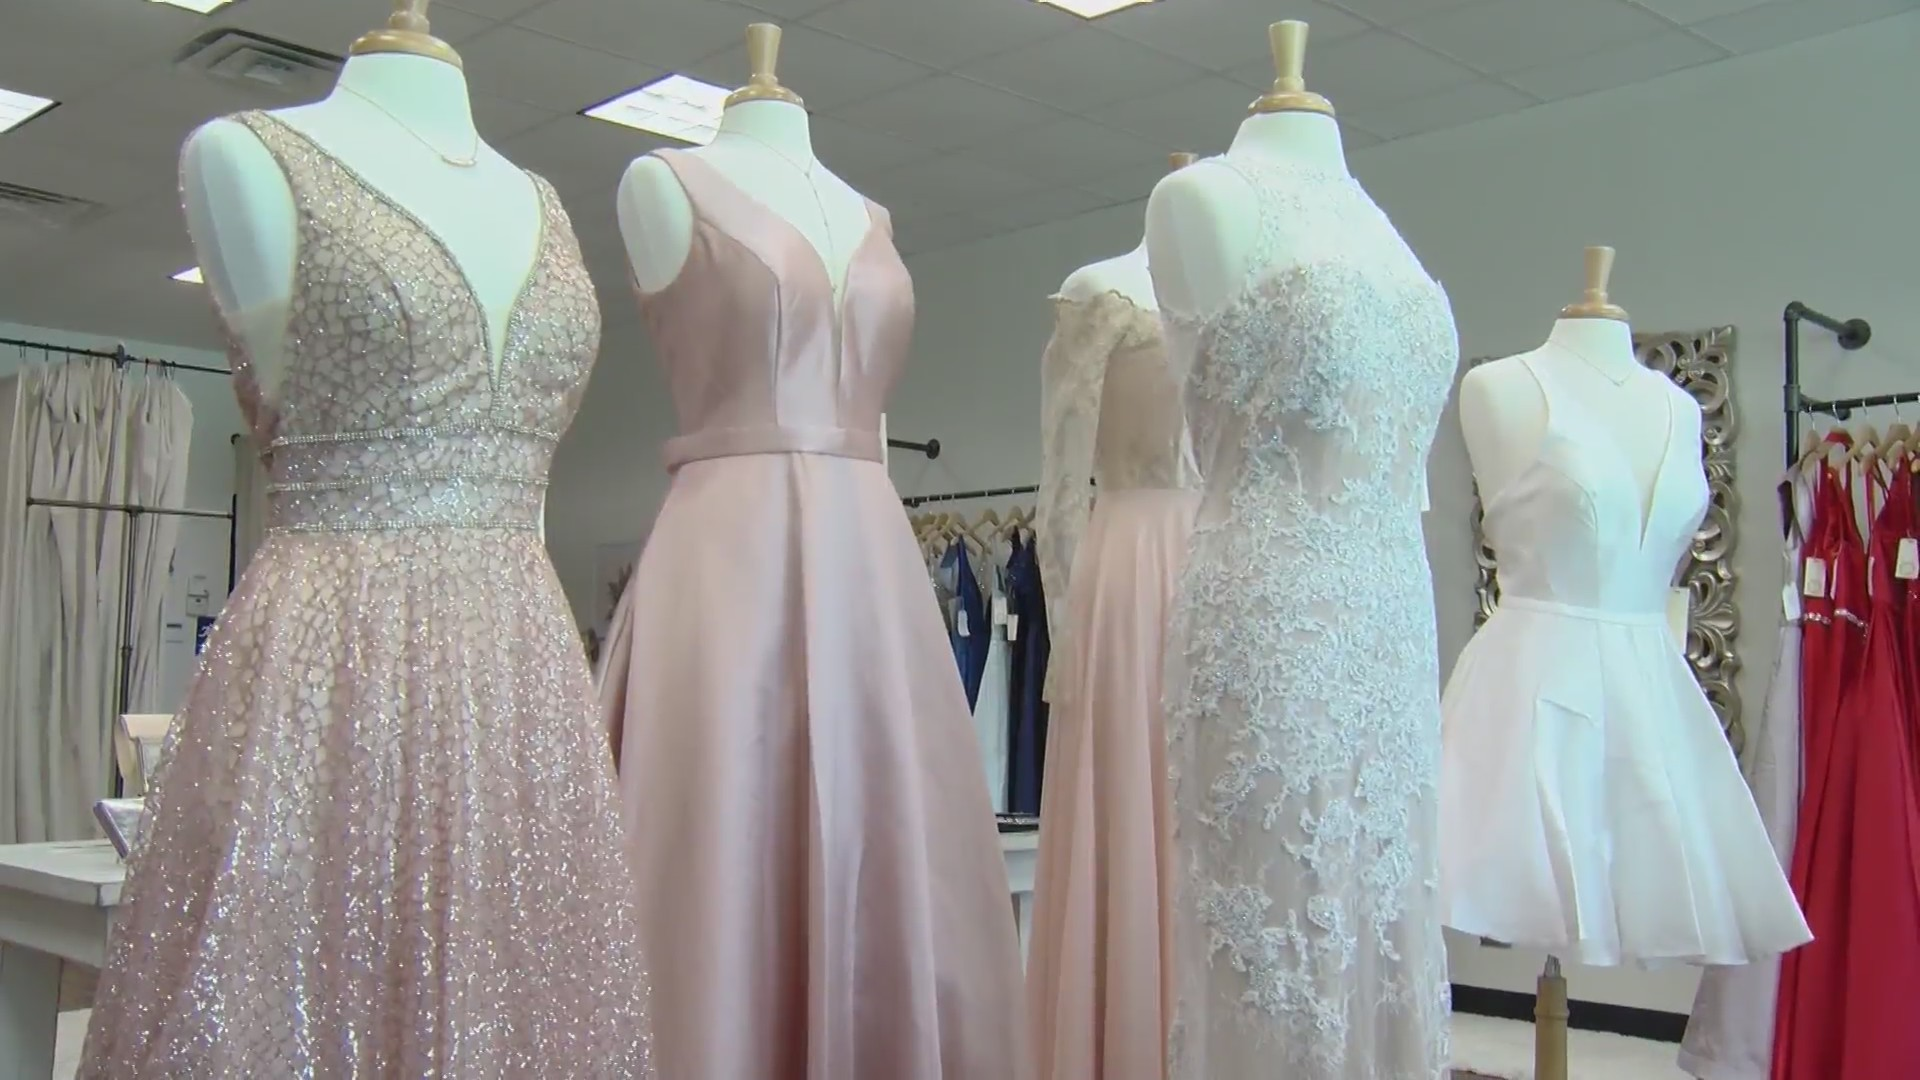 Find the perfect gown for any occasion with The Gown Shop